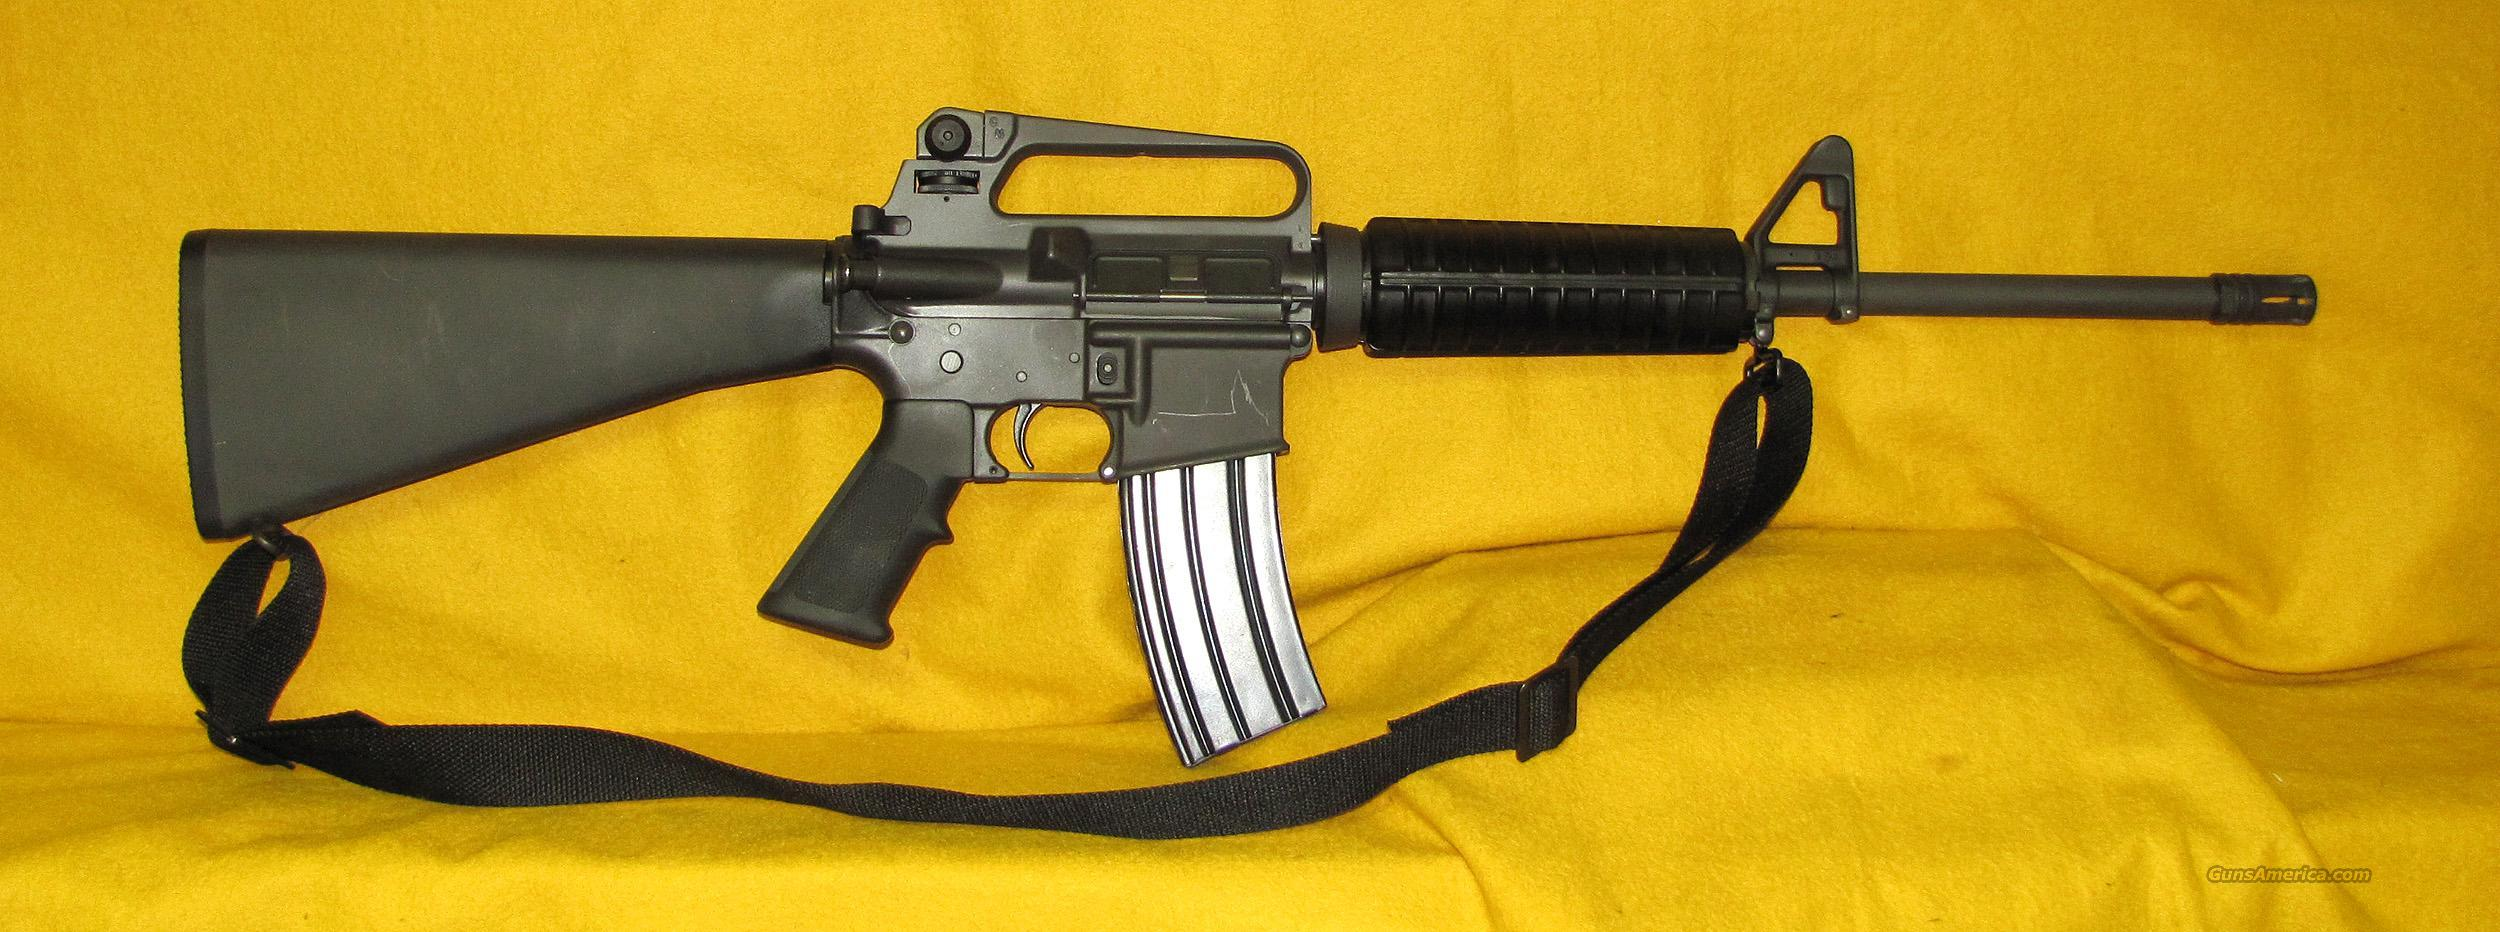 COLT ( SPECIAL CALIBER 762X39 ) AR-15 SPORTER LIGH  Guns > Rifles > Colt Military/Tactical Rifles